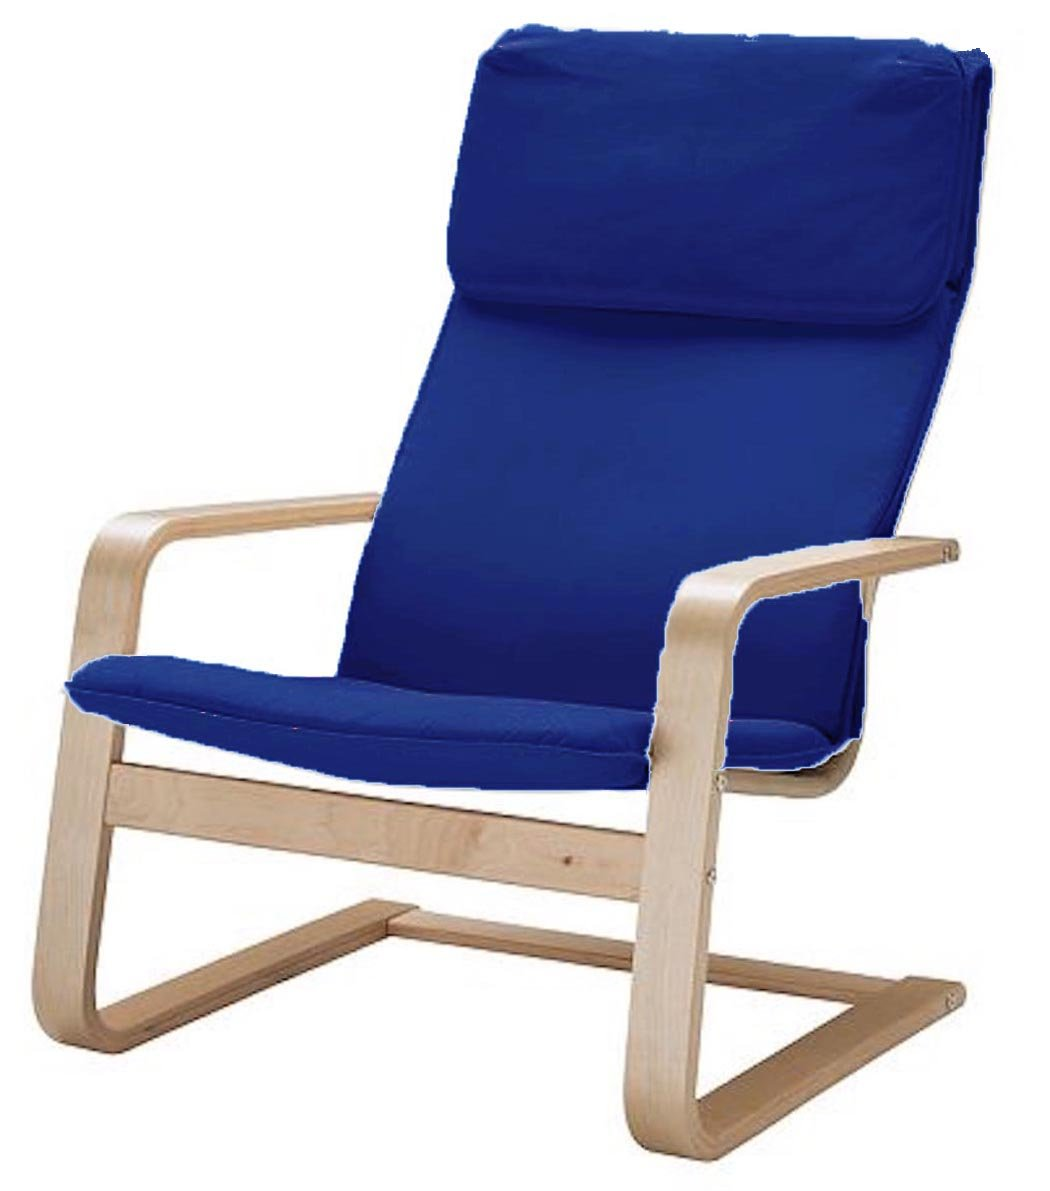 Amazon com the pello chair cotton covers replacement is custom made for ikea pello chair cover or pello armchair slipcover multi color options blue